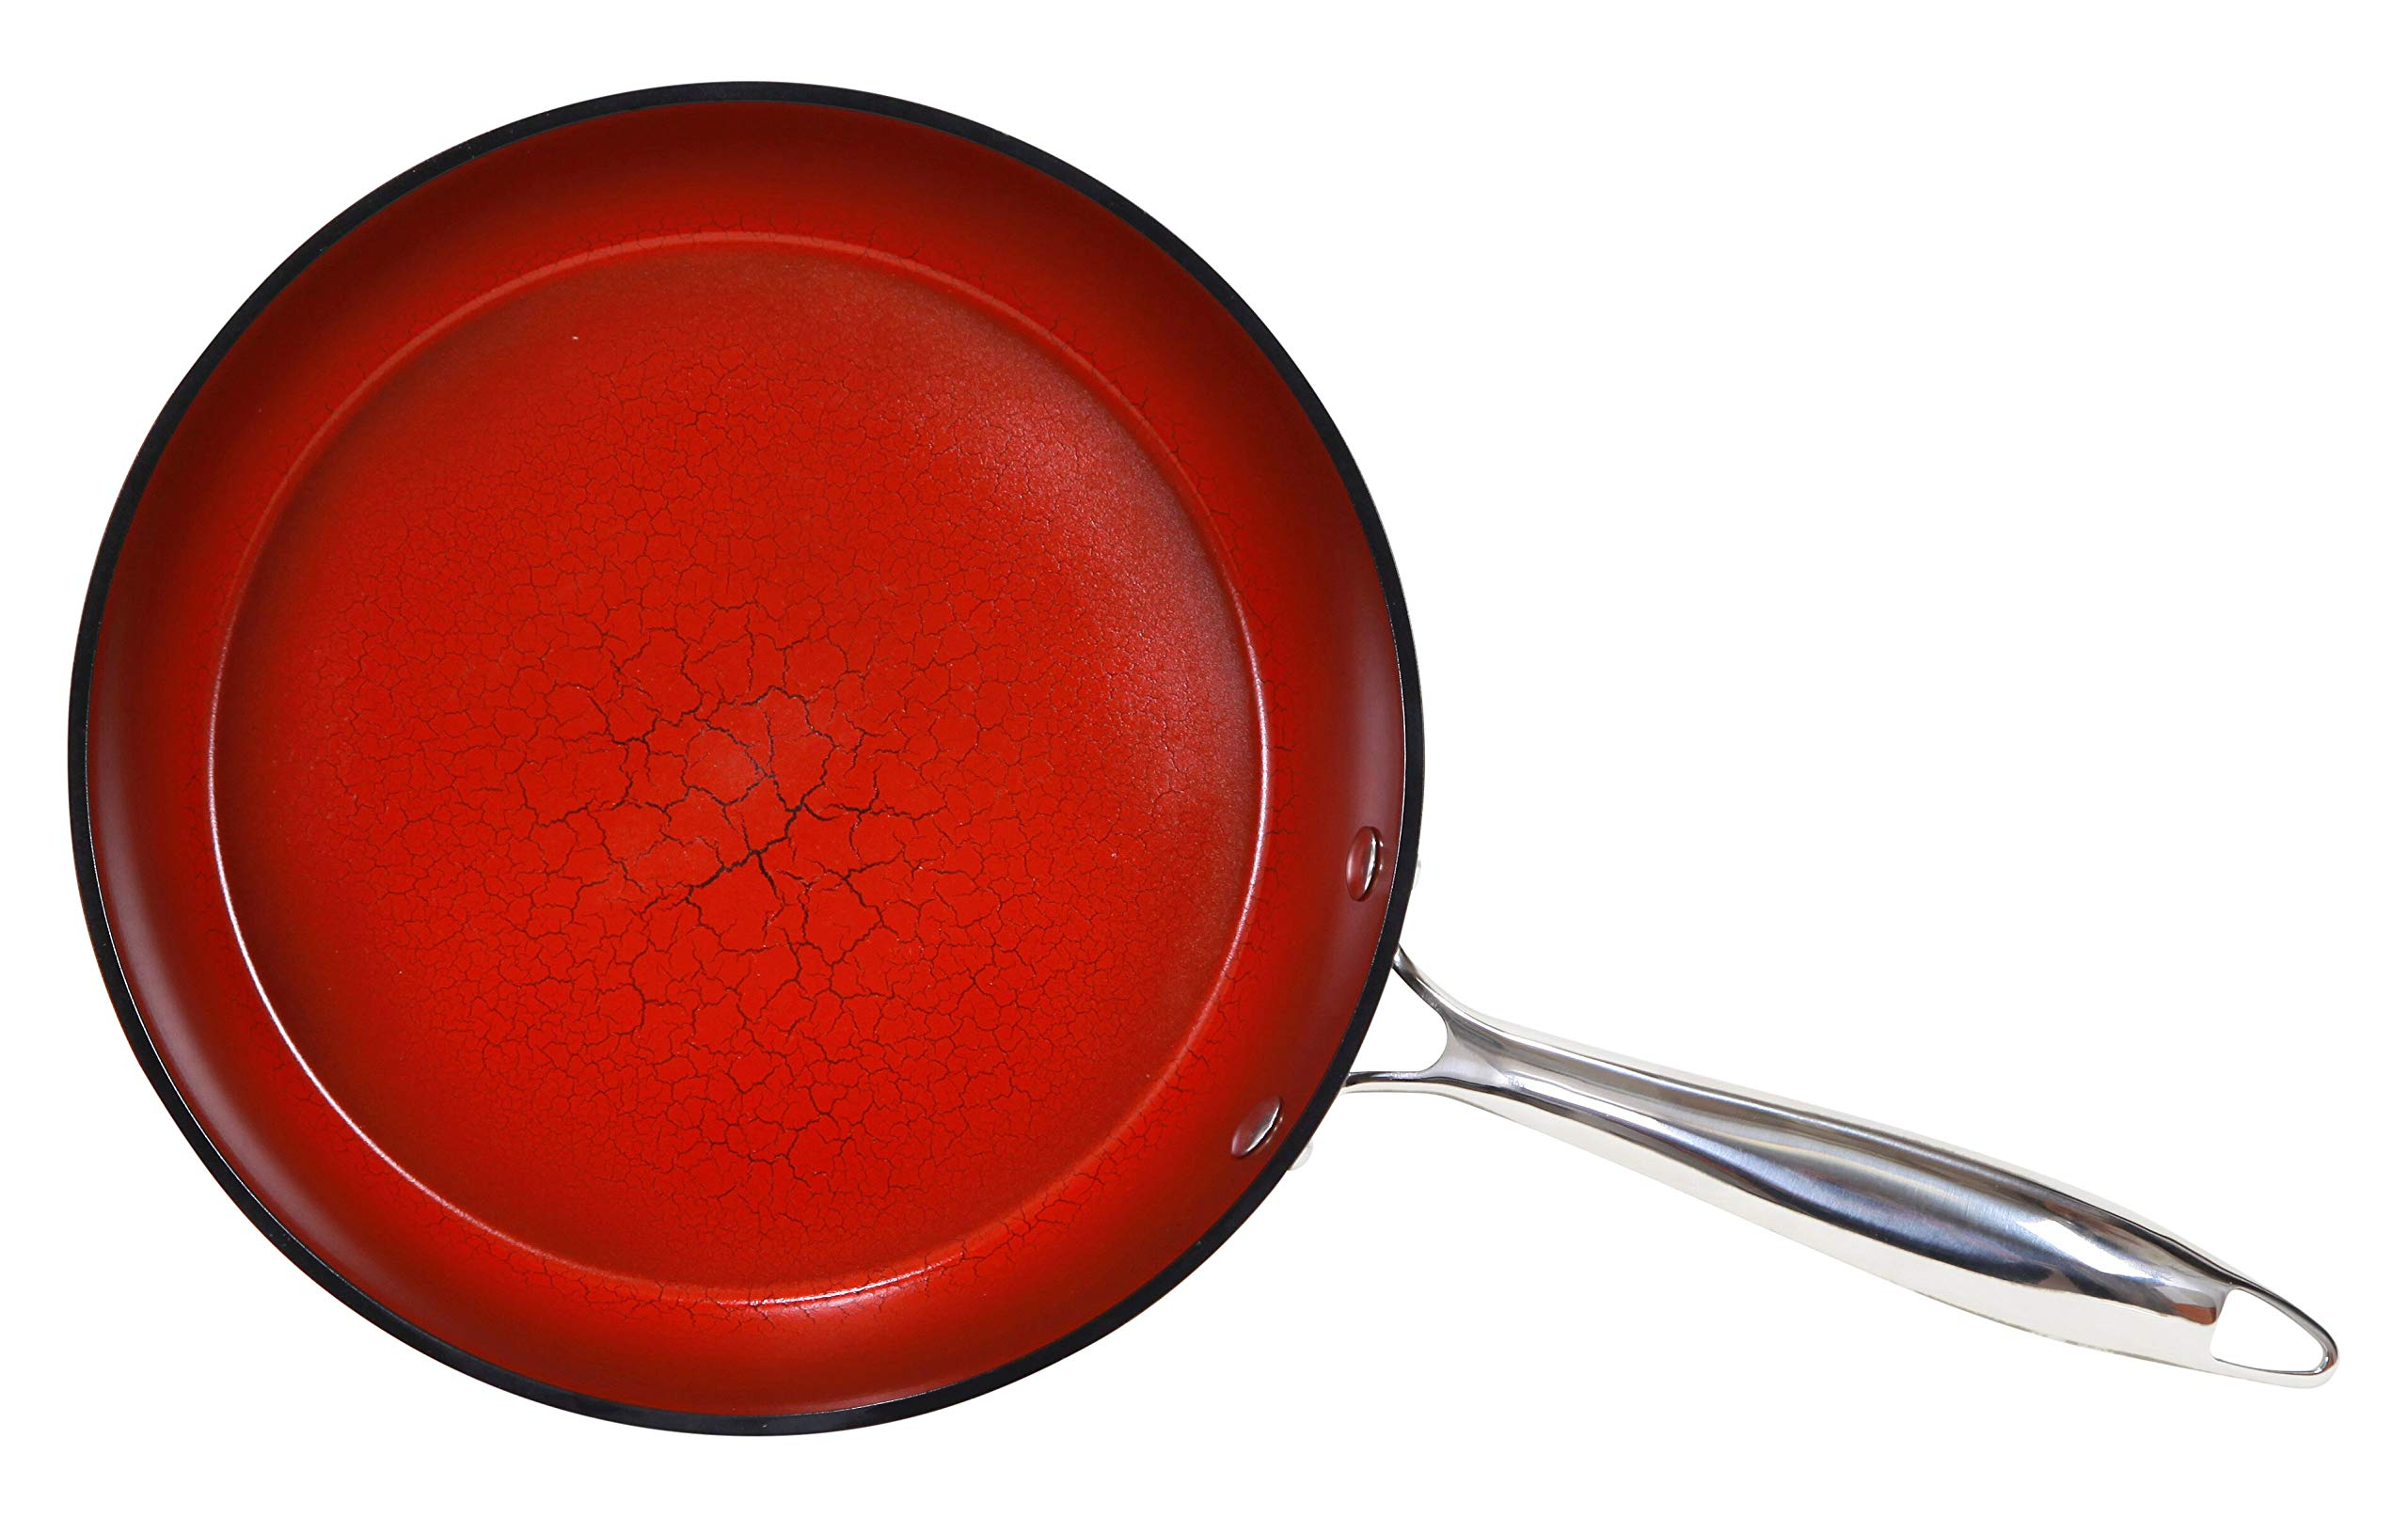 Fire & Earth NEW Toxin Free Ceramic Nonstick Safe Open pressed Frypan 9.5'' (1)